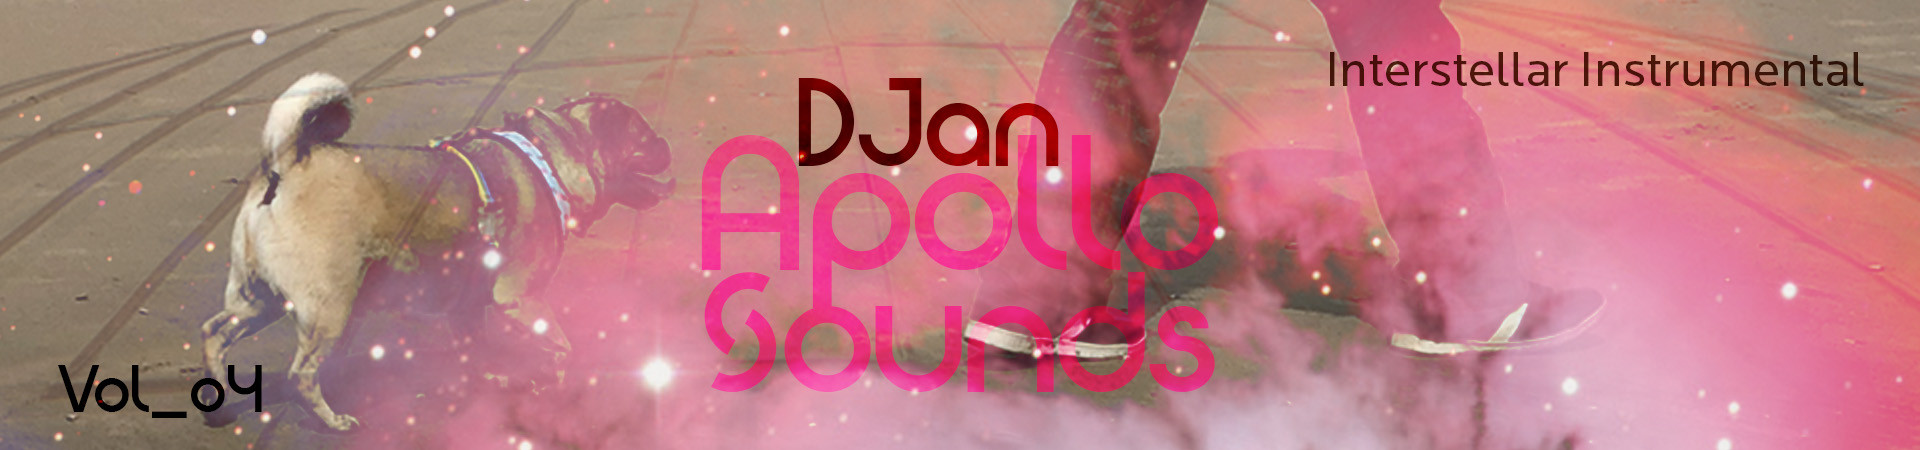 ApolloSounds Header 04